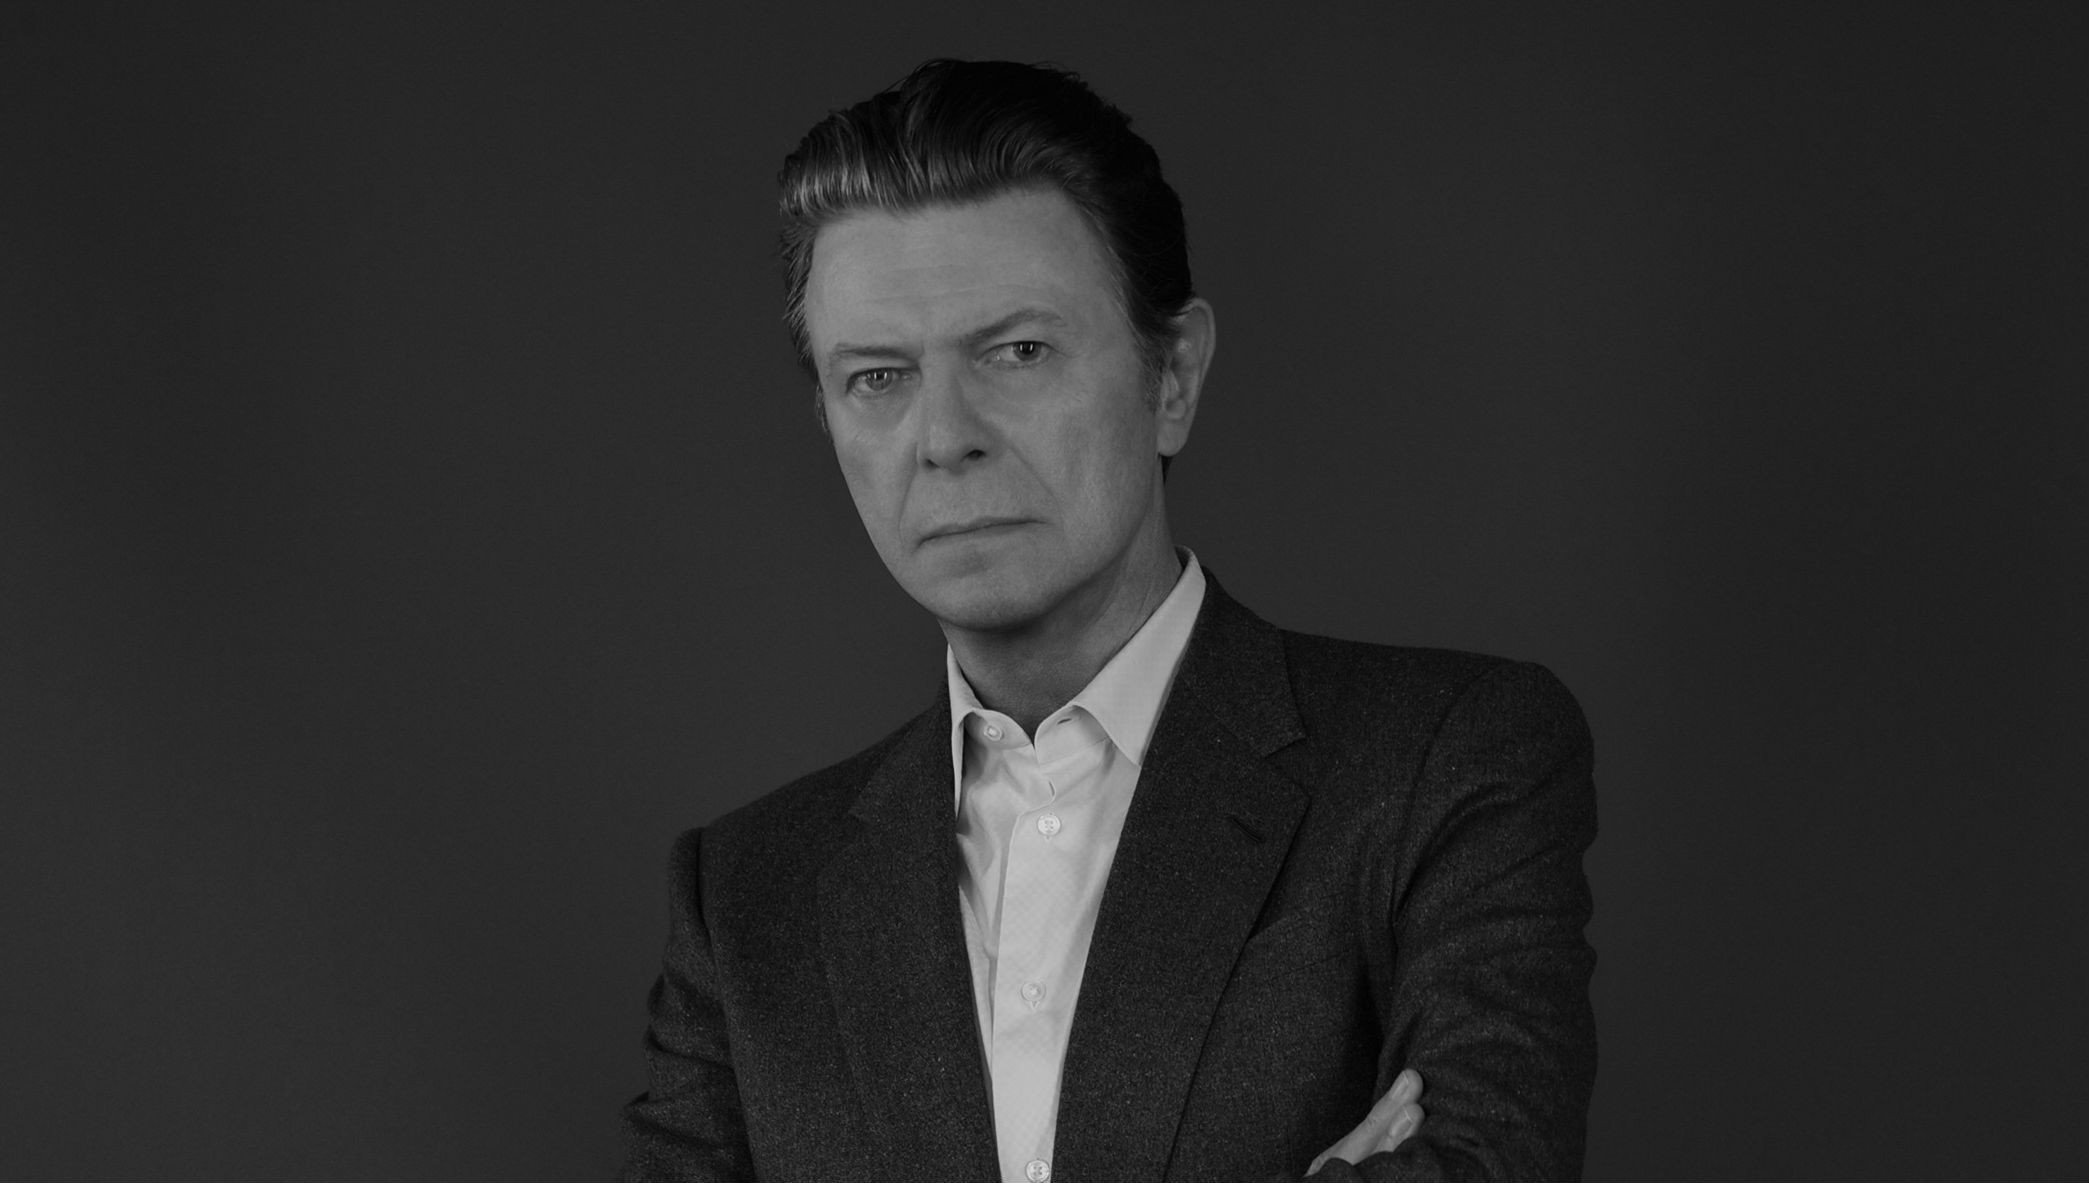 David Bowie Computer Wallpapers